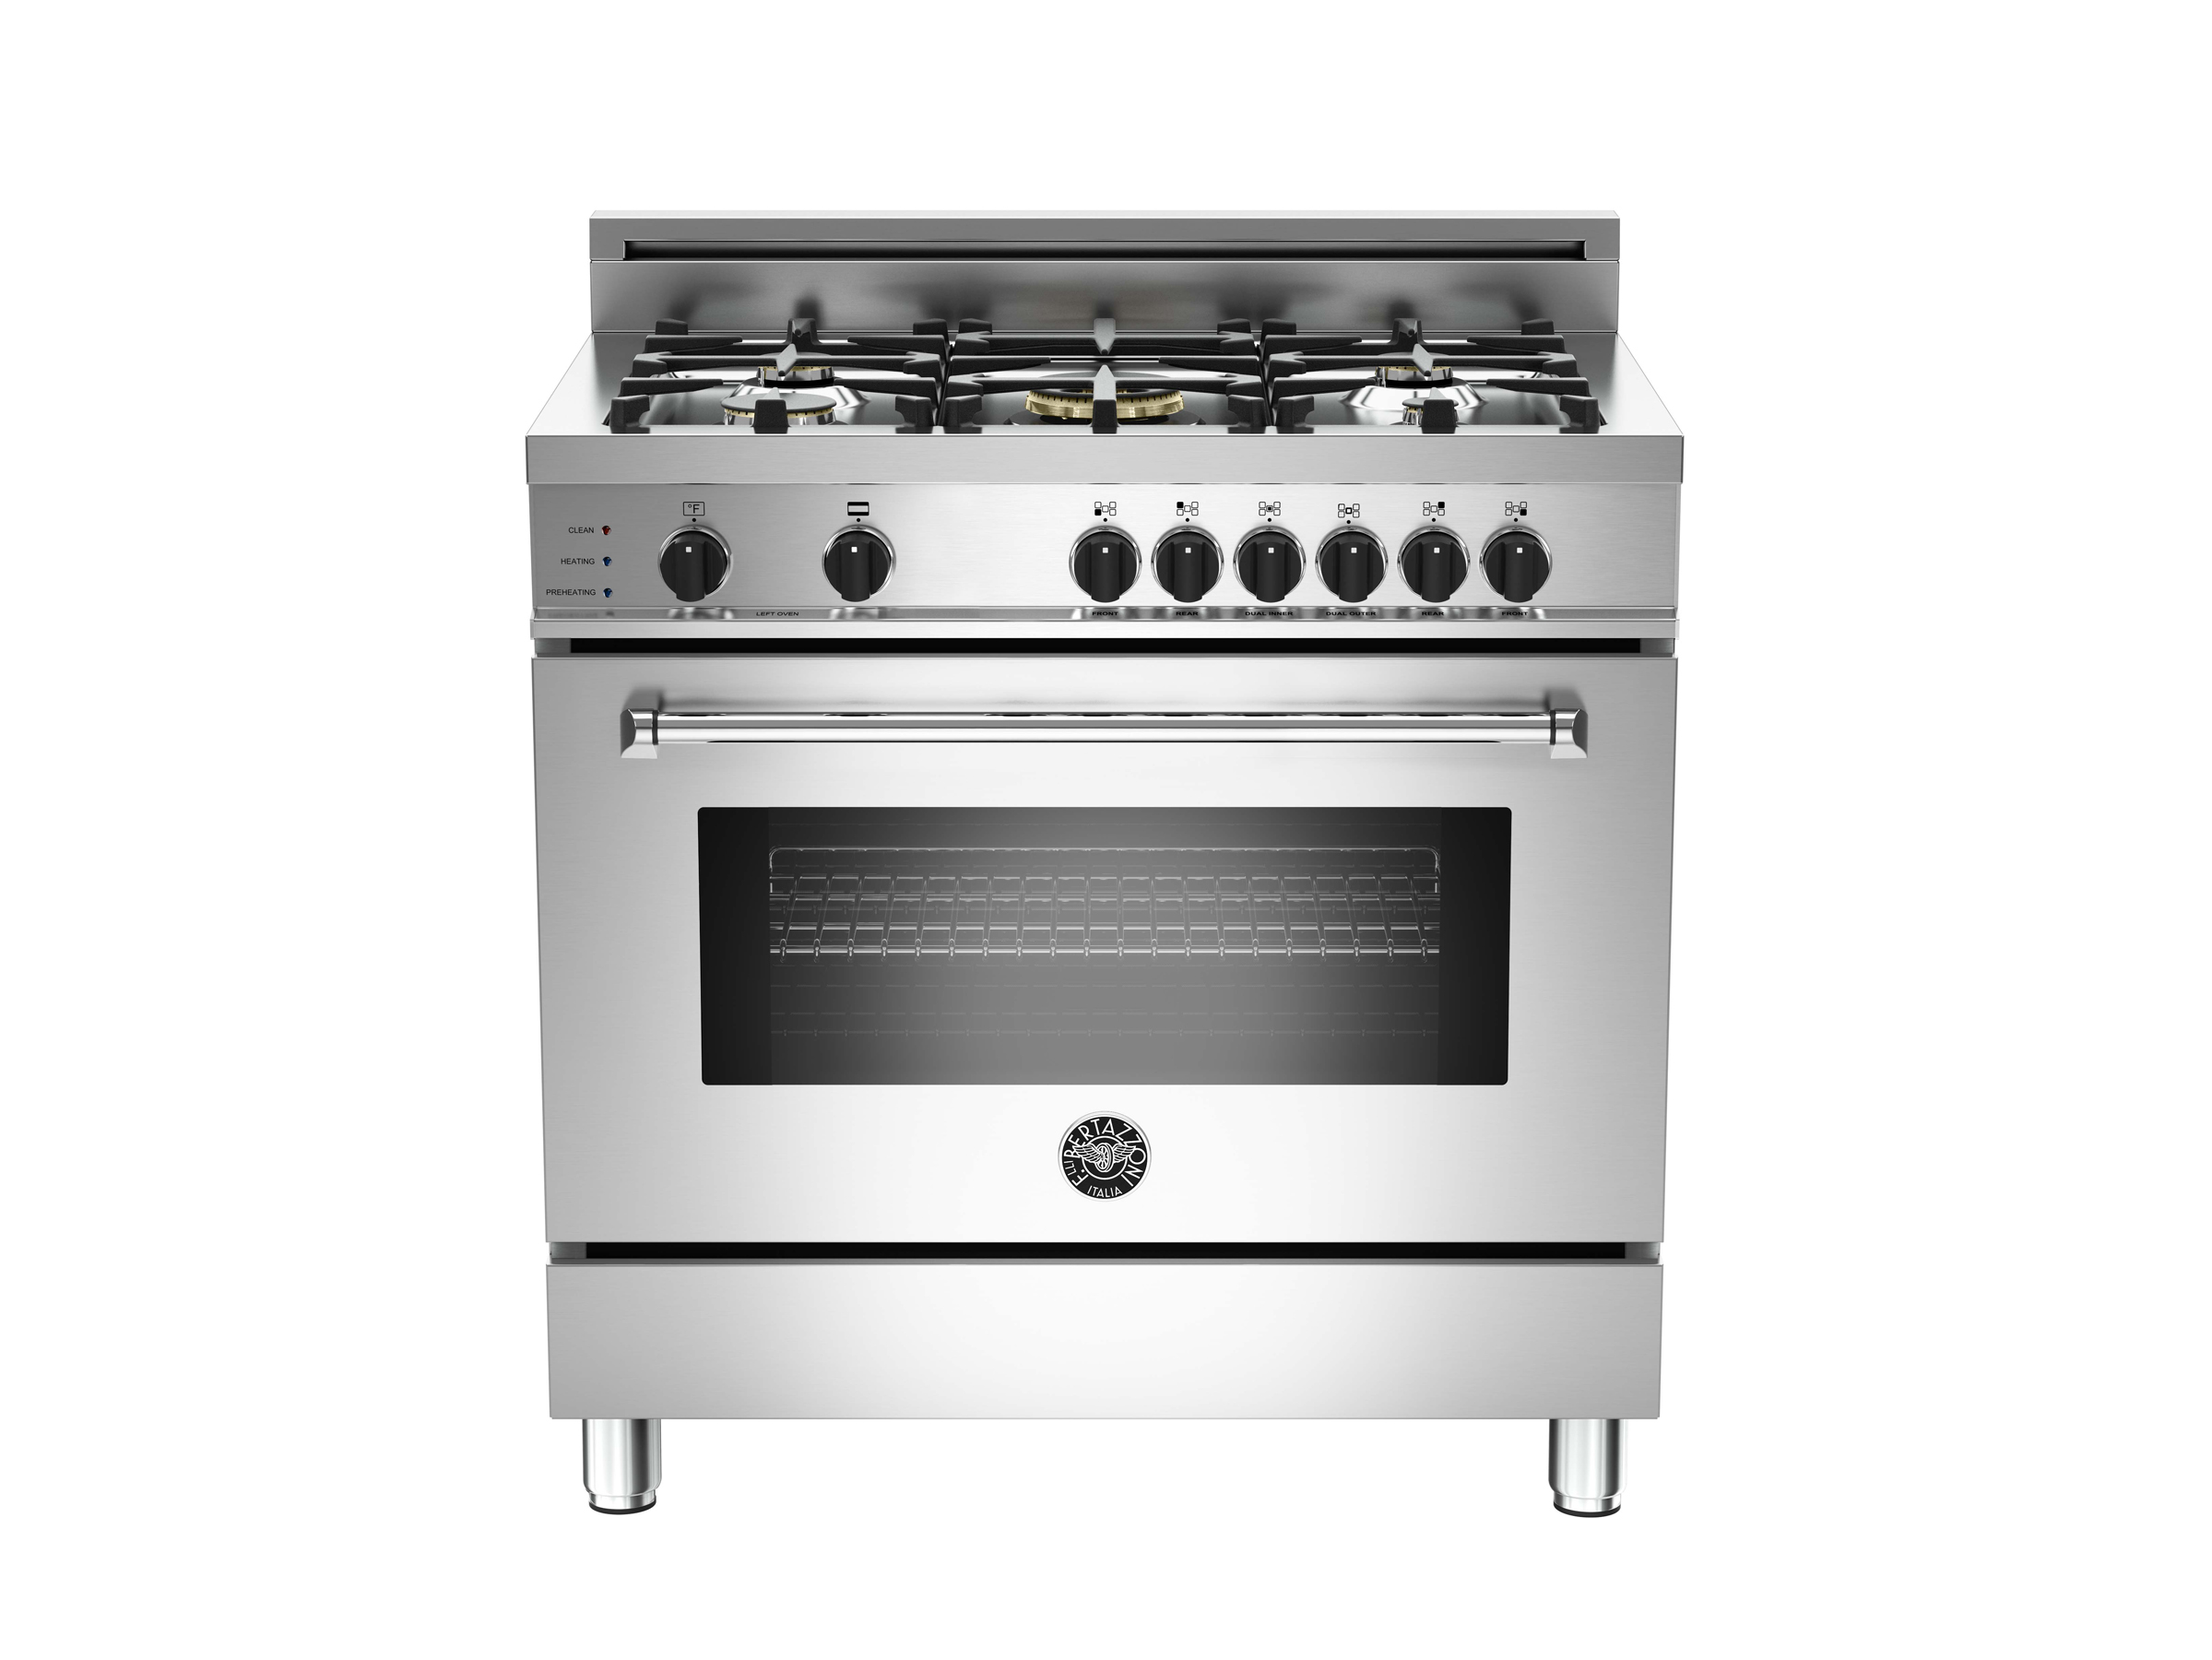 36 5-Burner, Electric Self-Clean Oven | Bertazzoni - Stainless